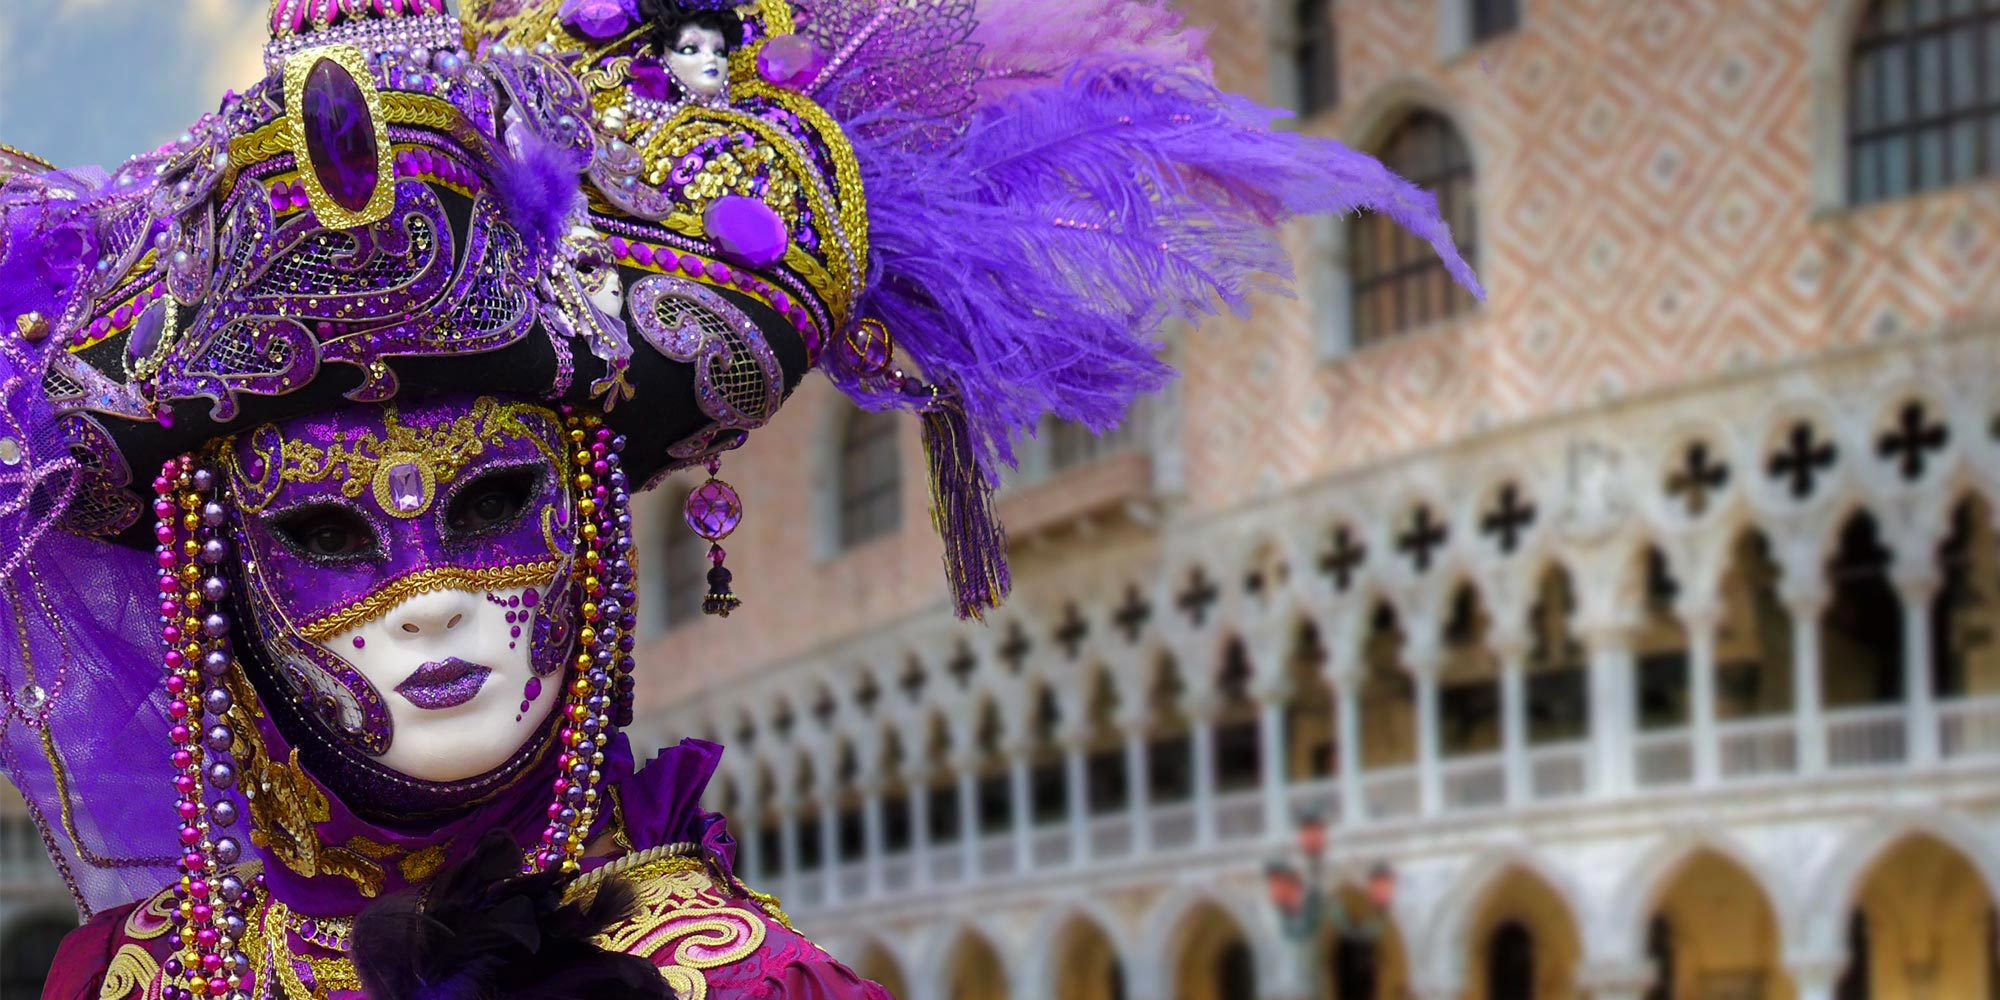 THE CARNIVAL OF IVREA, VENICE AND MILAN. A JOURNEY THROUGH THE CELEBRATIONS IN NORTHERN ITALY